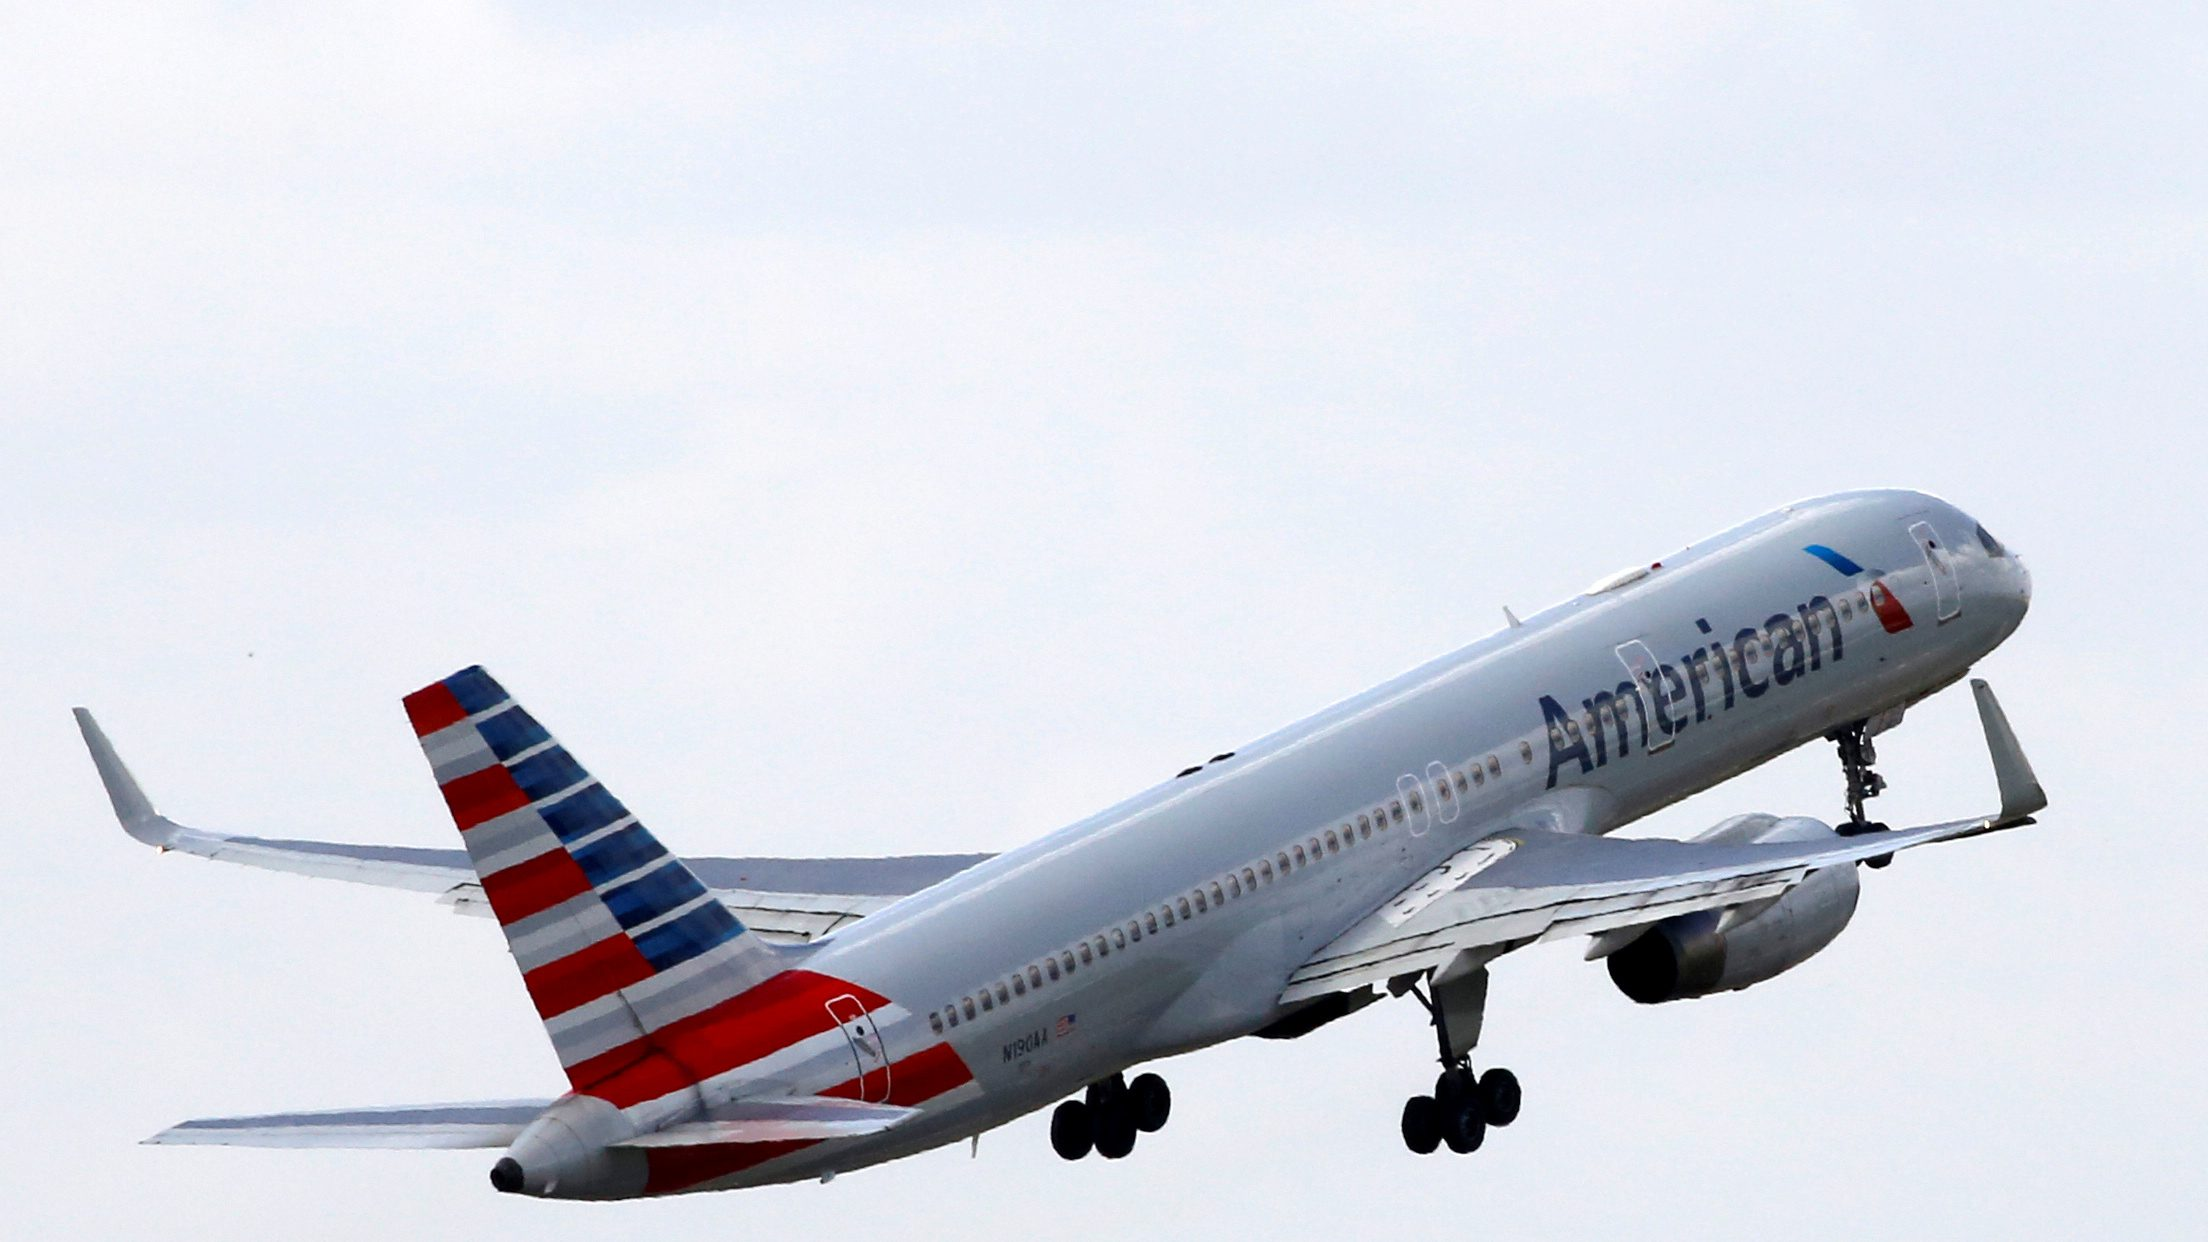 FILE PHOTO -  An American Airlines Boeing 757 aircraft takes off at the Charles de Gaulle airport in Roissy